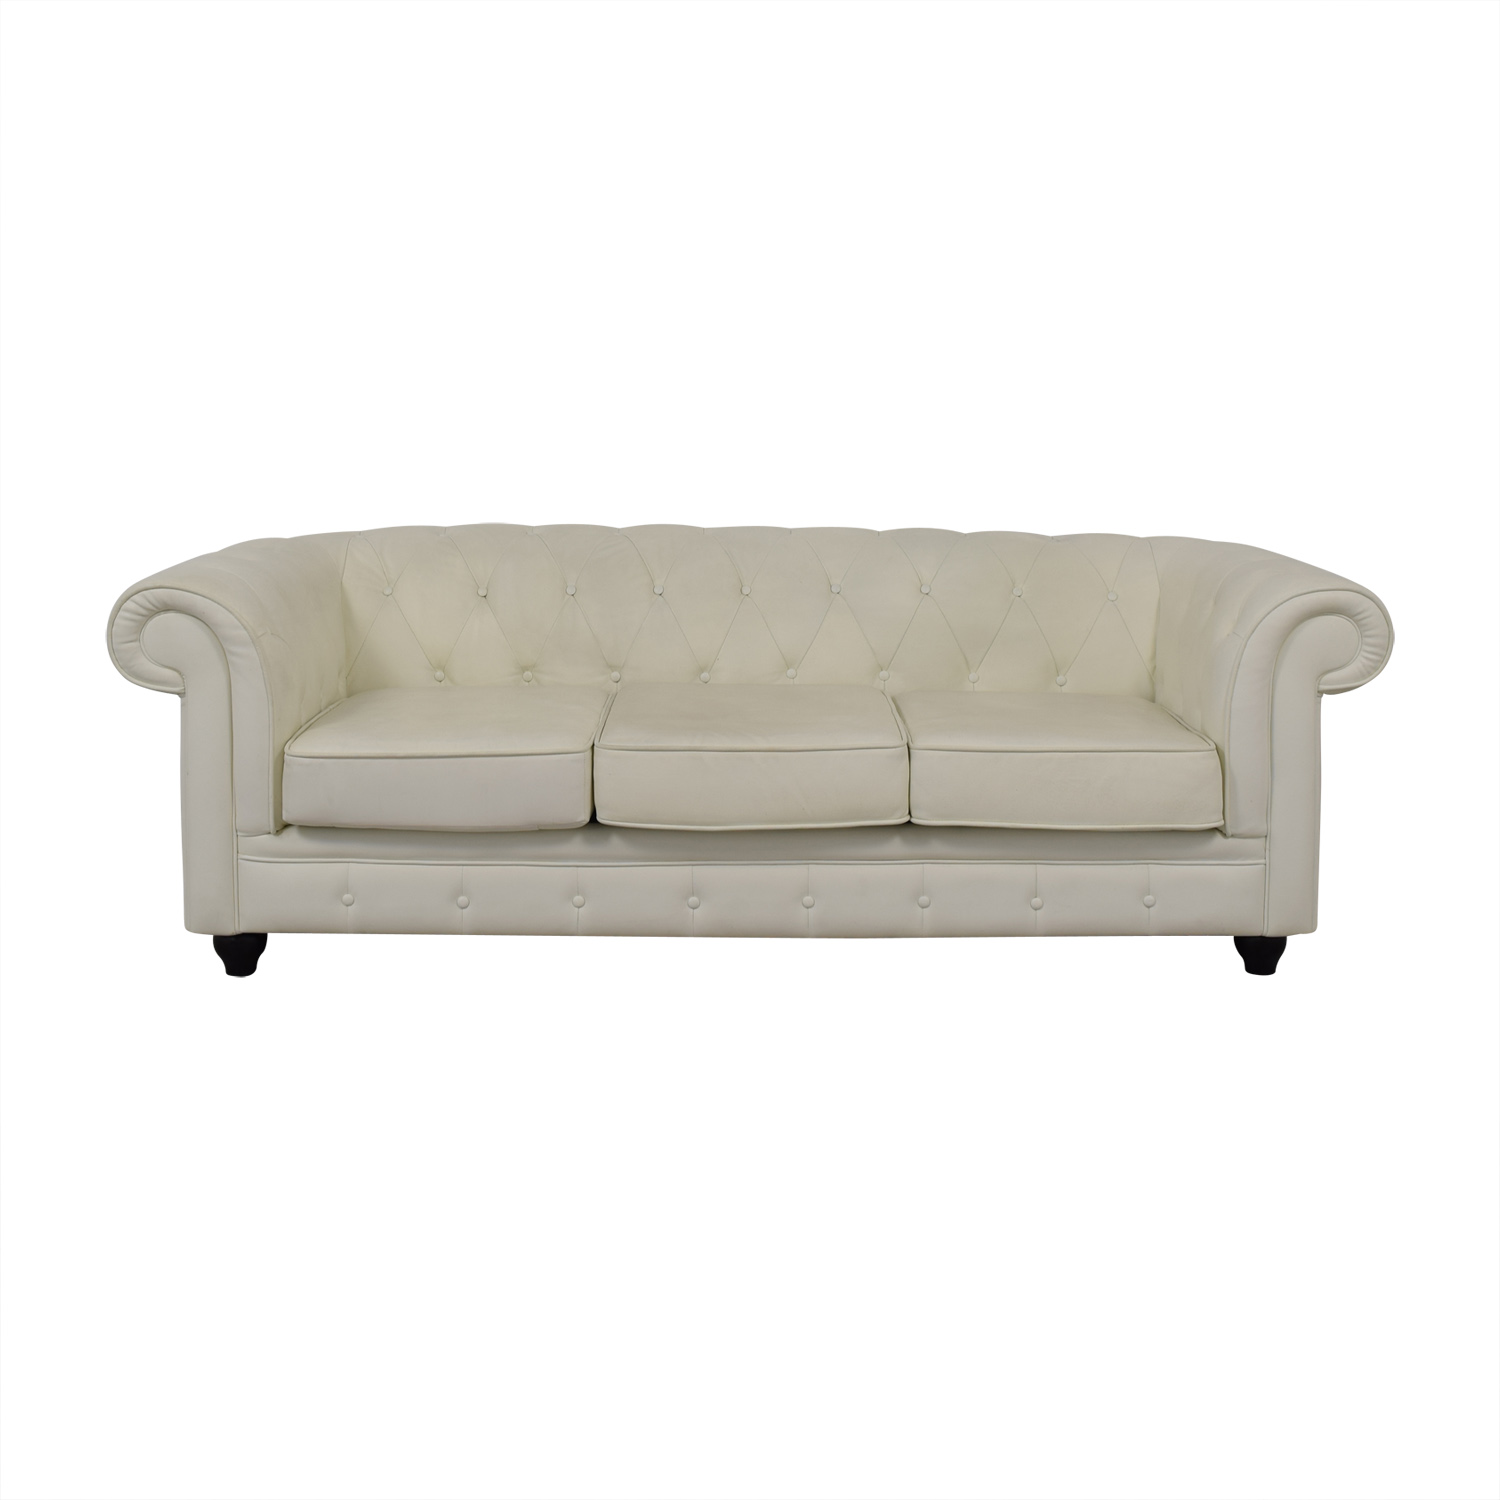 Modani Modani Furniture Chesterfield White Tufted Three-Cushion Sofa discount